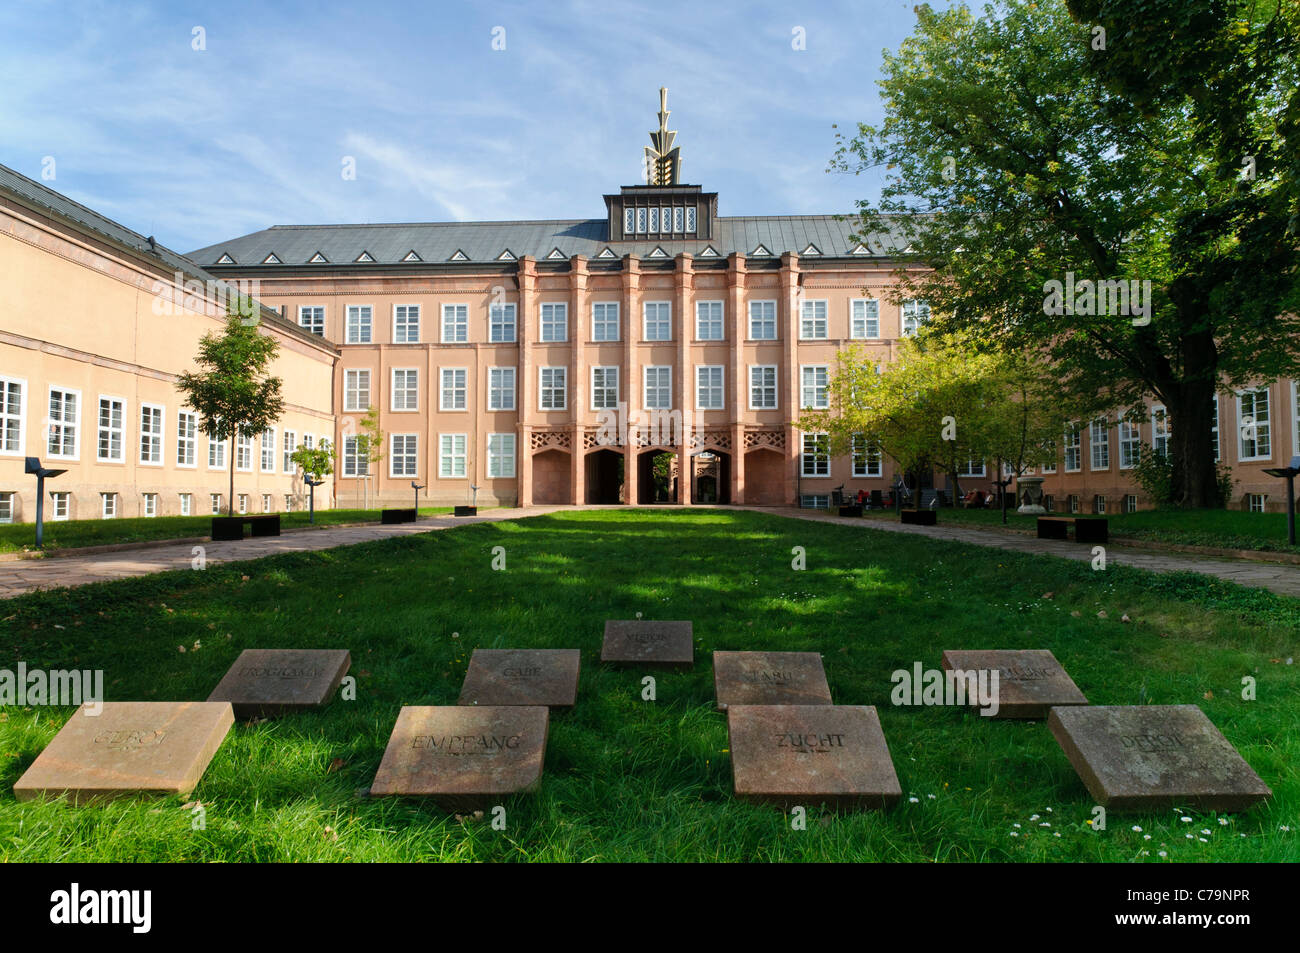 Grassimuseum museum of applied arts, ethnology and musical instruments, Leipzig, Saxony, Germany, Europe - Stock Image